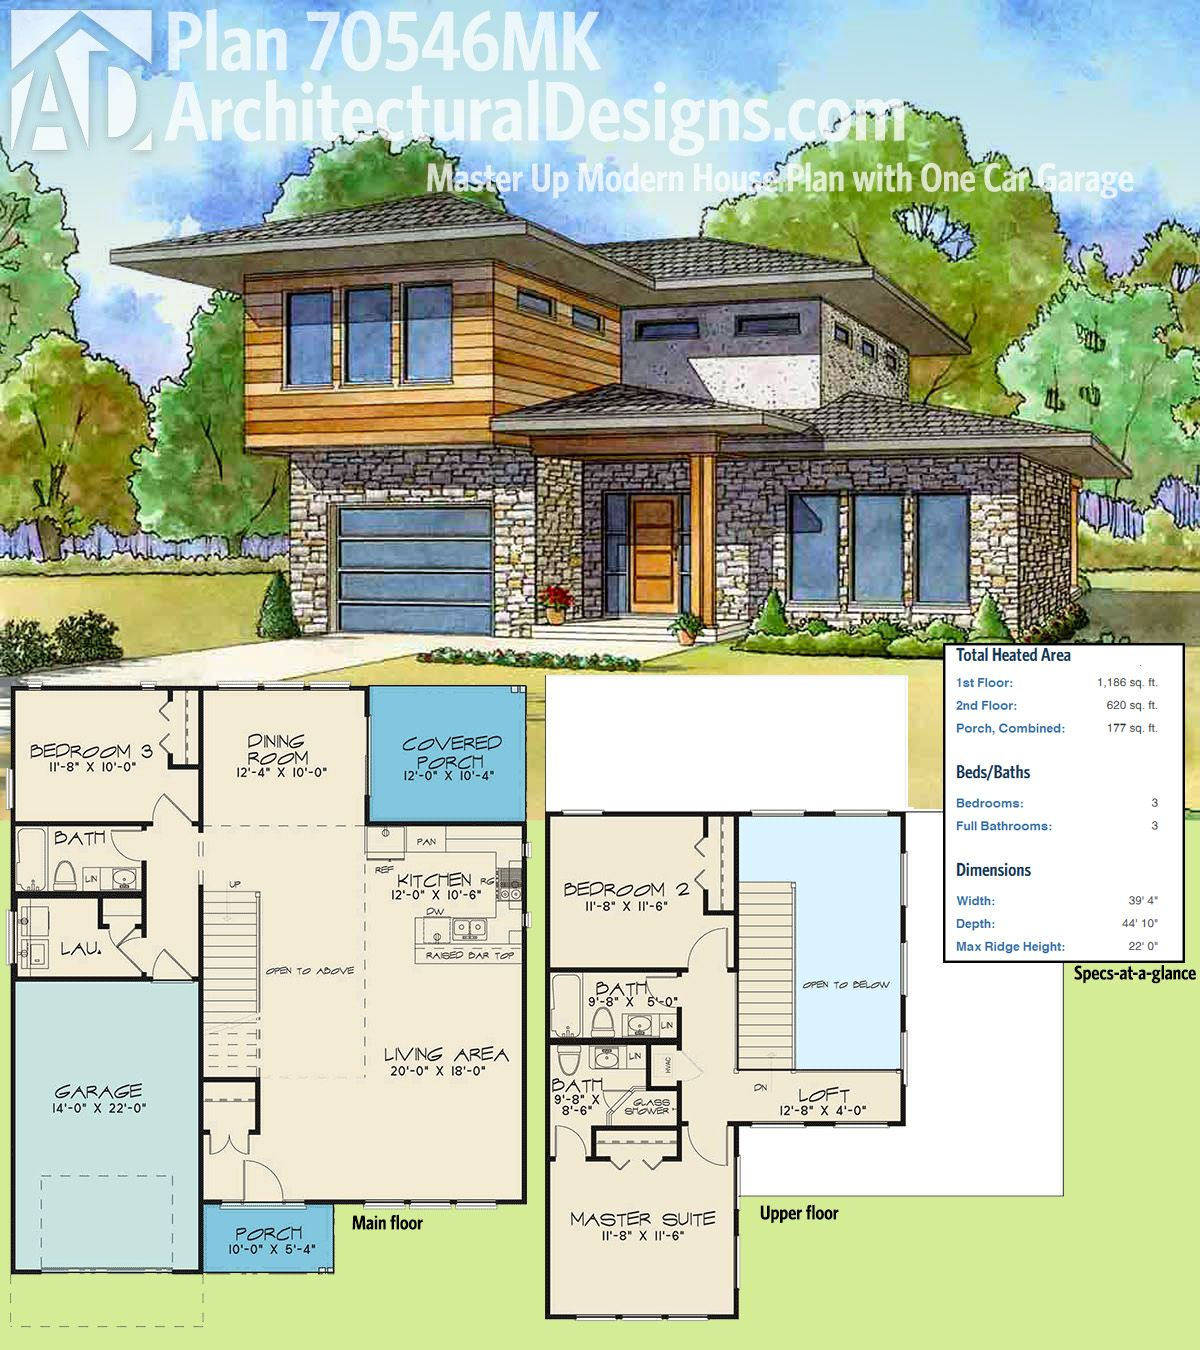 Introducing The New Modern Home: Plan 70546MK: Master Up Modern House Plan With One Car